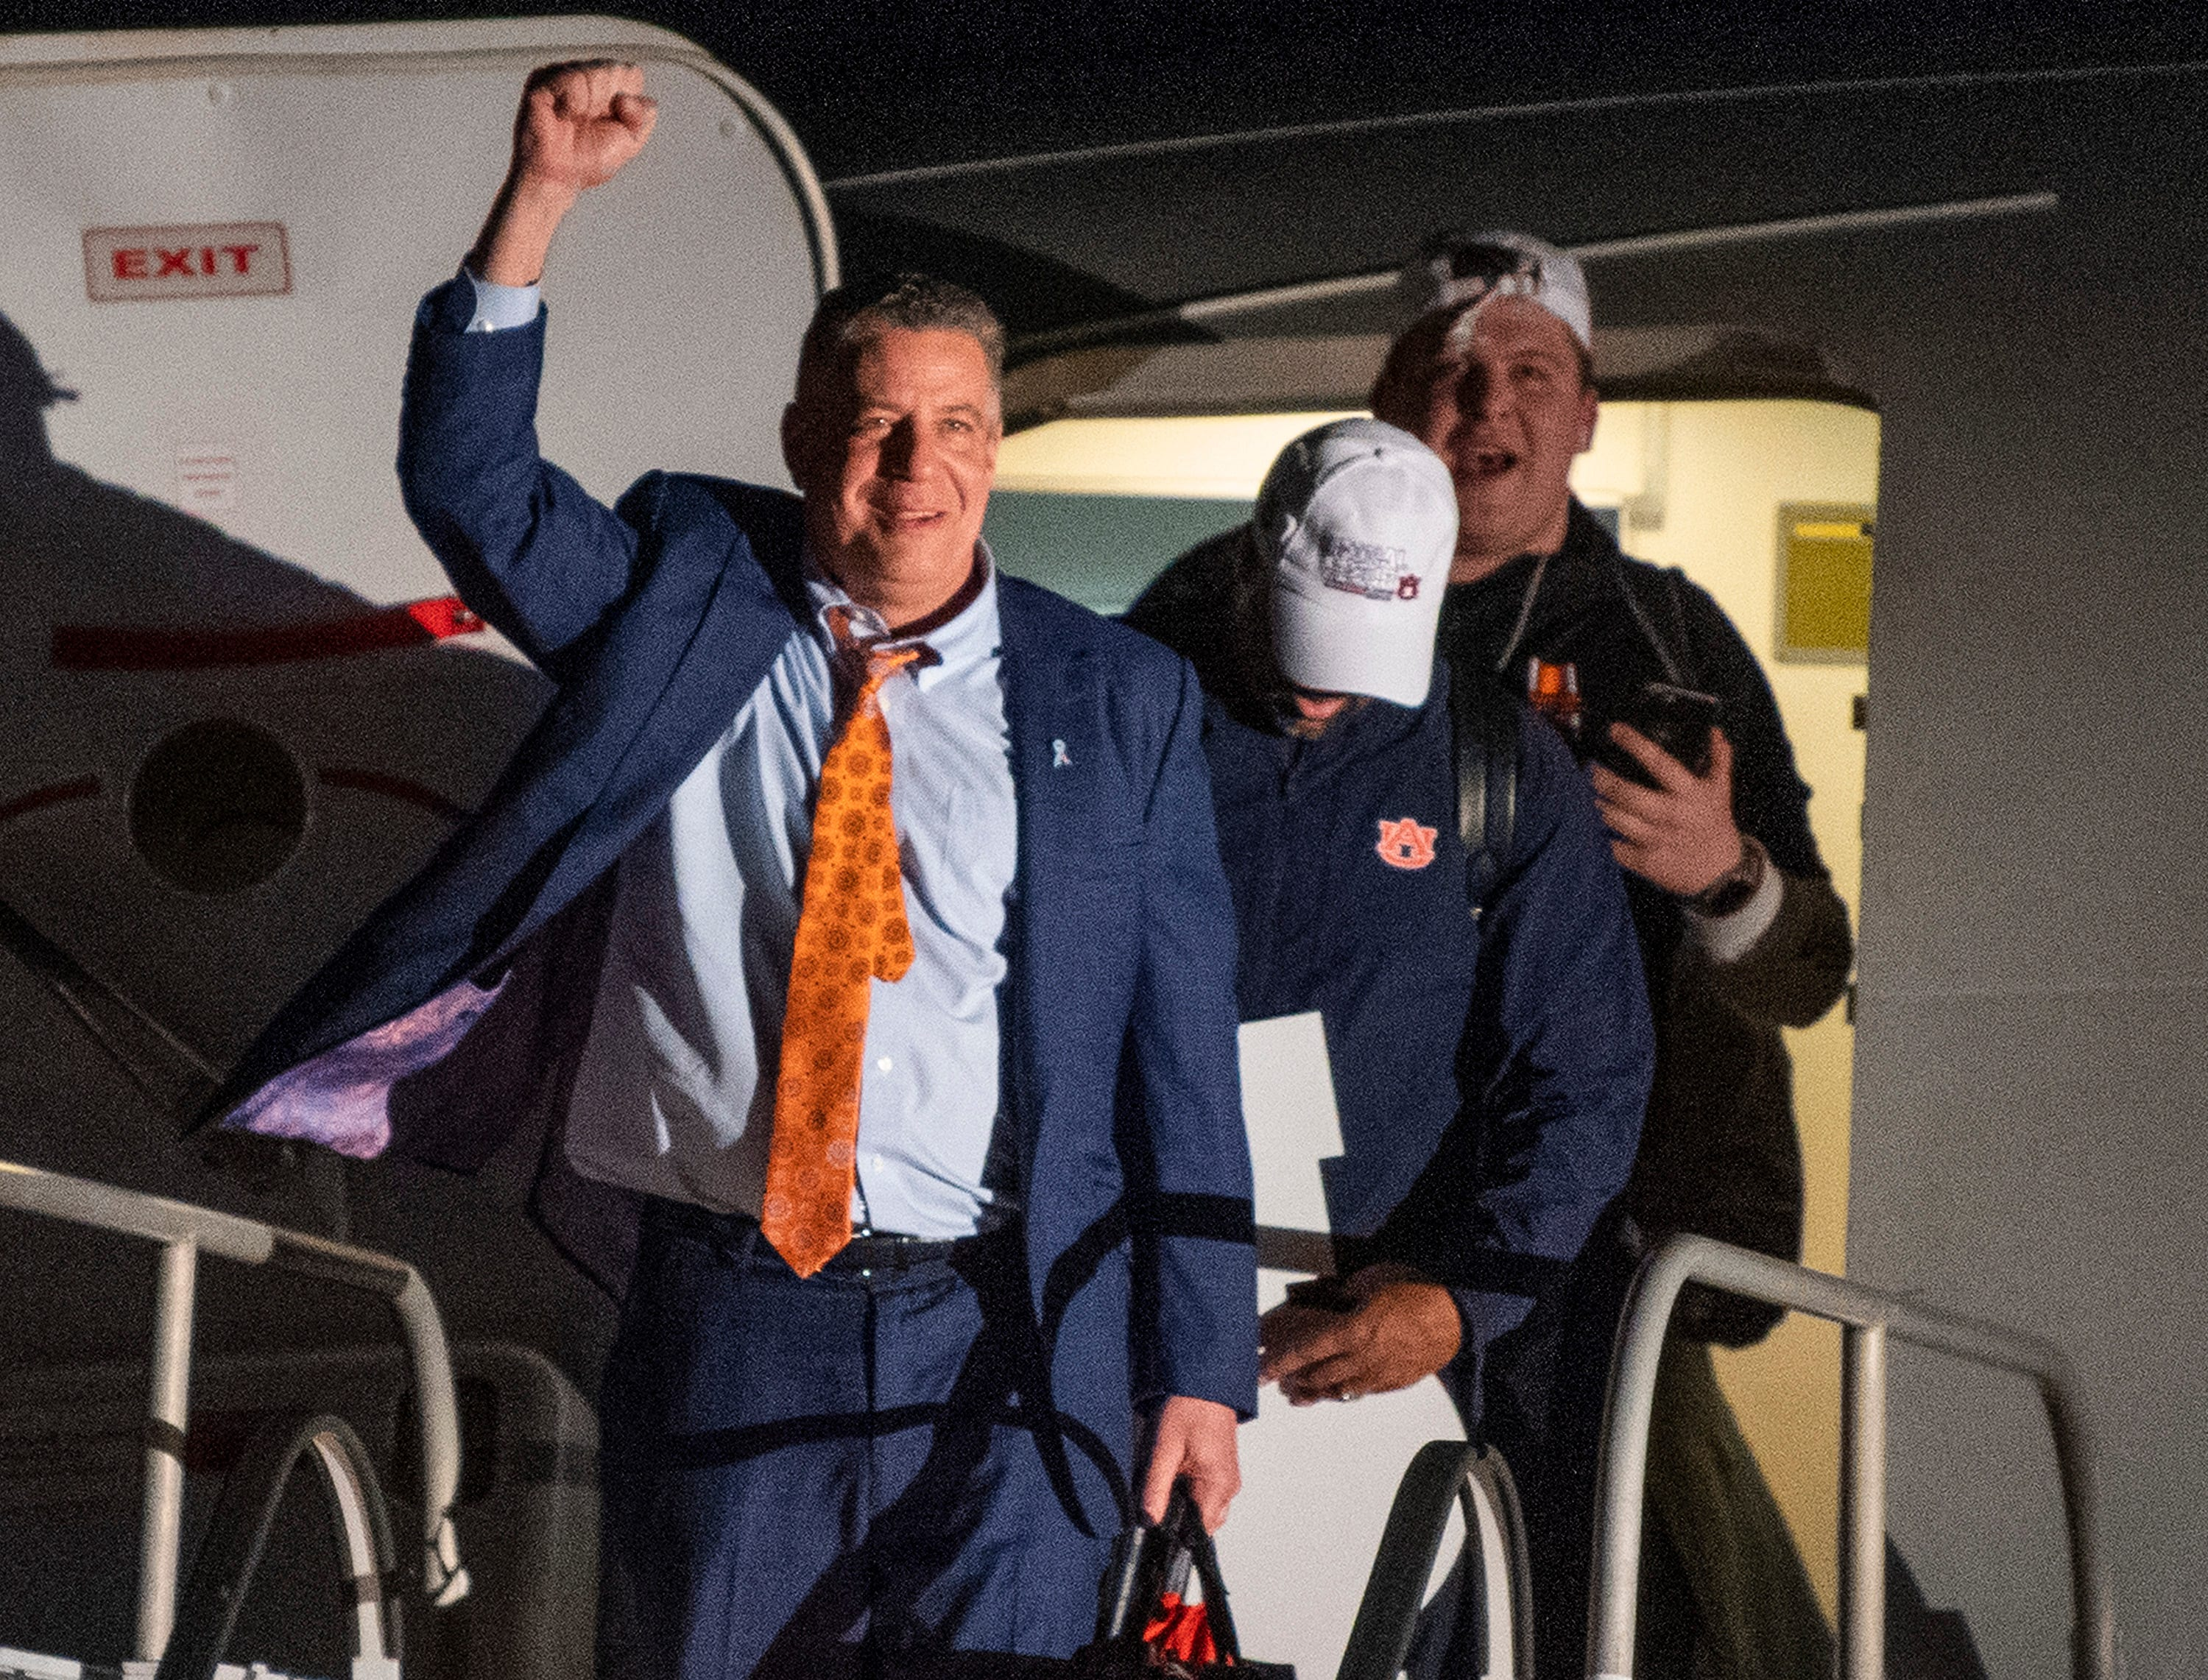 Head coach Bruce Pearl pumps his fist as the Auburn men's basketball team arrives at the Montgomery, Ala., airport on Sunday evening March 31, 2019 after defeating Kentucky in Kansas City to advance to the NCAA Basketball Final Four next weekend.